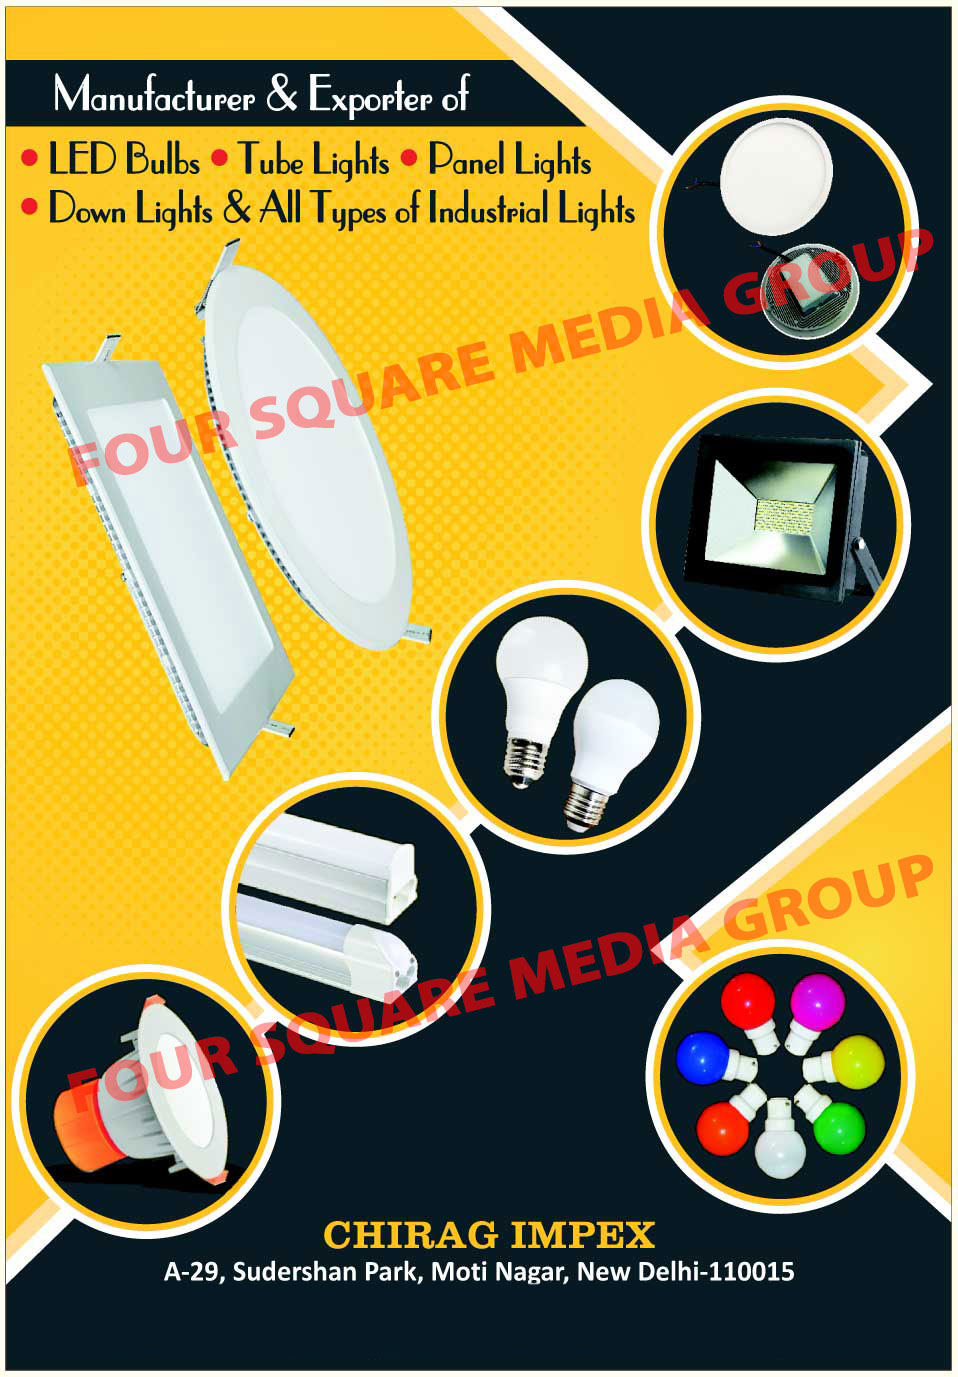 Led Lights, Led Bulbs, Led Tube Lights, Led Down Lights, Led Panel Lights, Industrial Led Lights